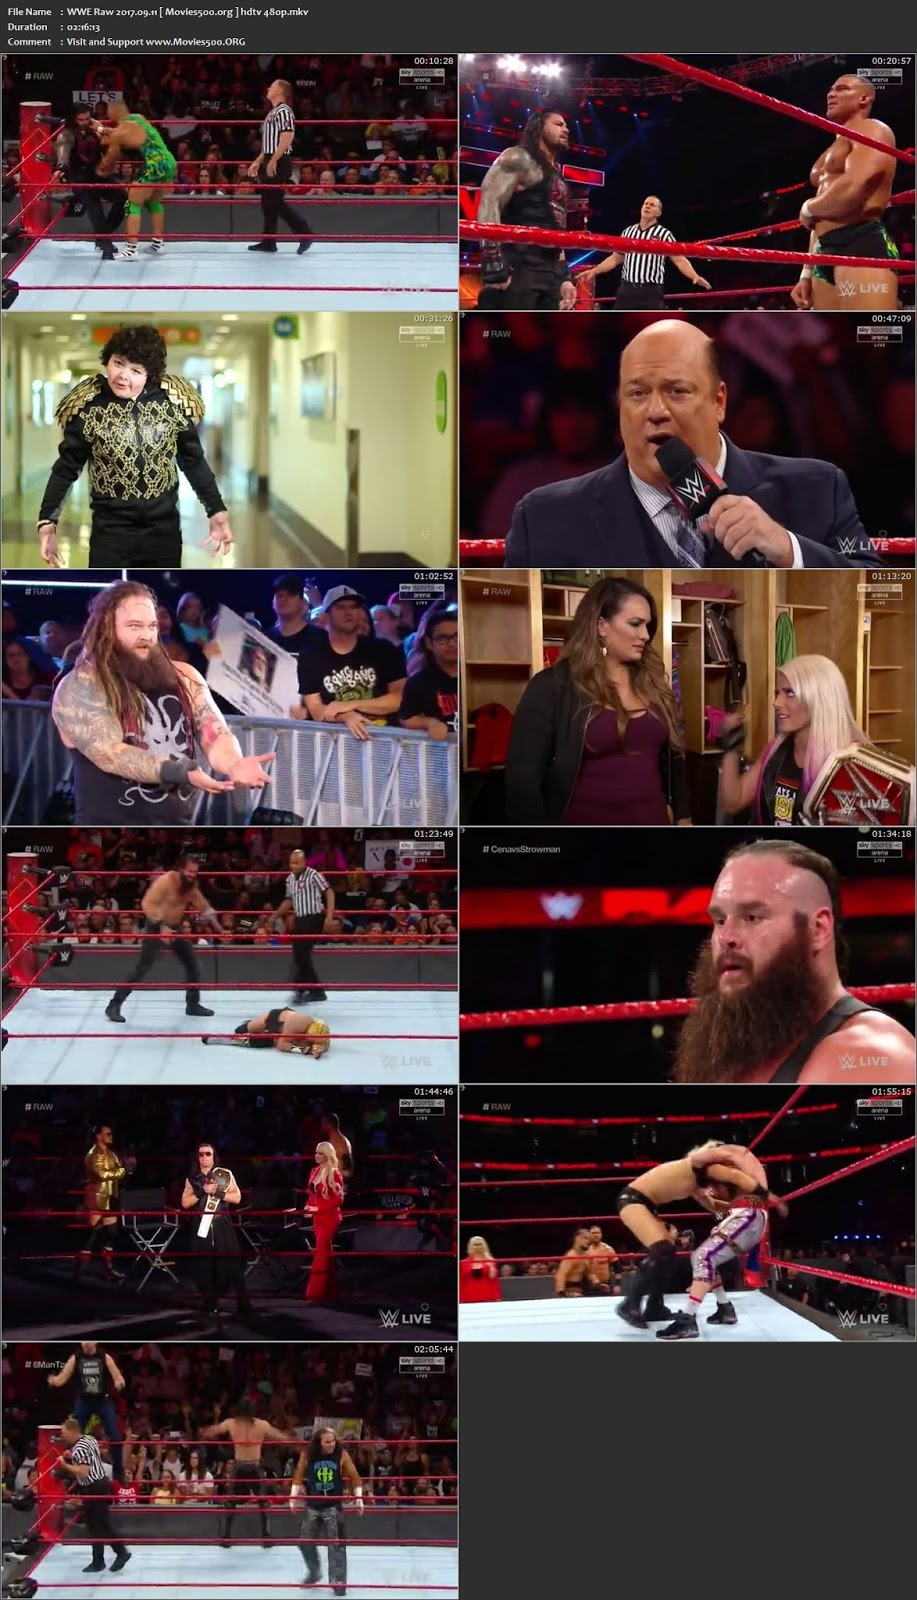 WWE Monday Night 11 SEPTEMBER 2017 Download HDTV 480p at xcharge.net